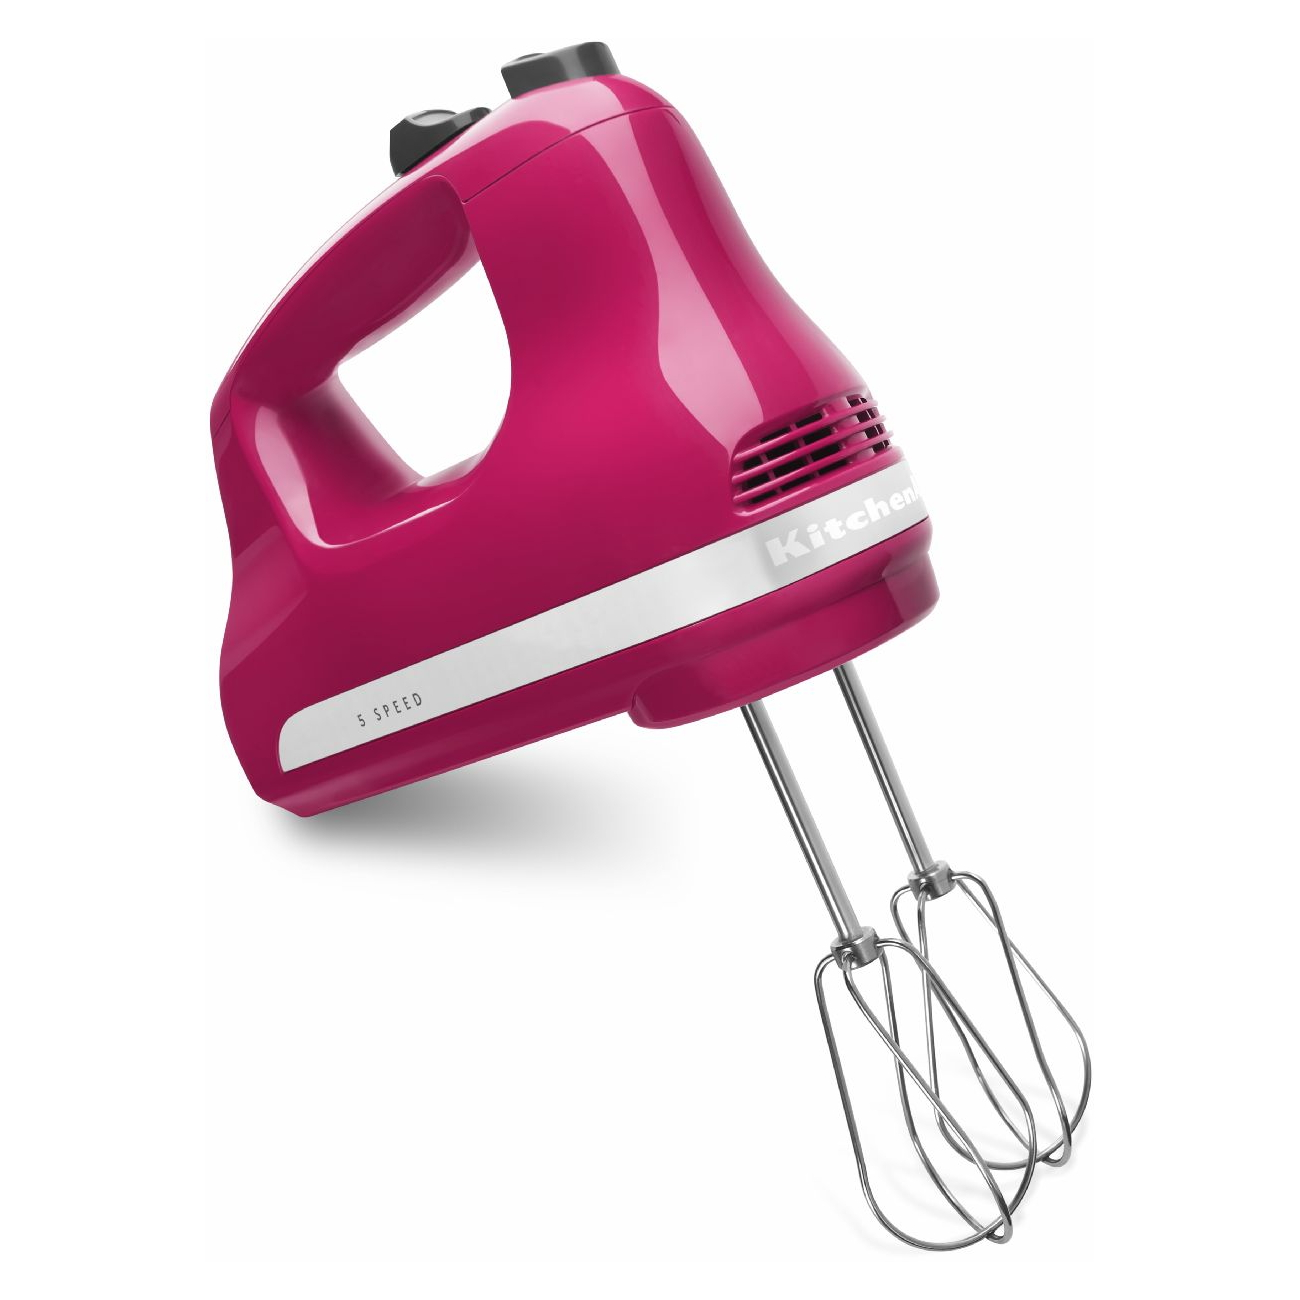 KitchenAid Ultra Power Cranberry Red 5 Speed Hand Mixer